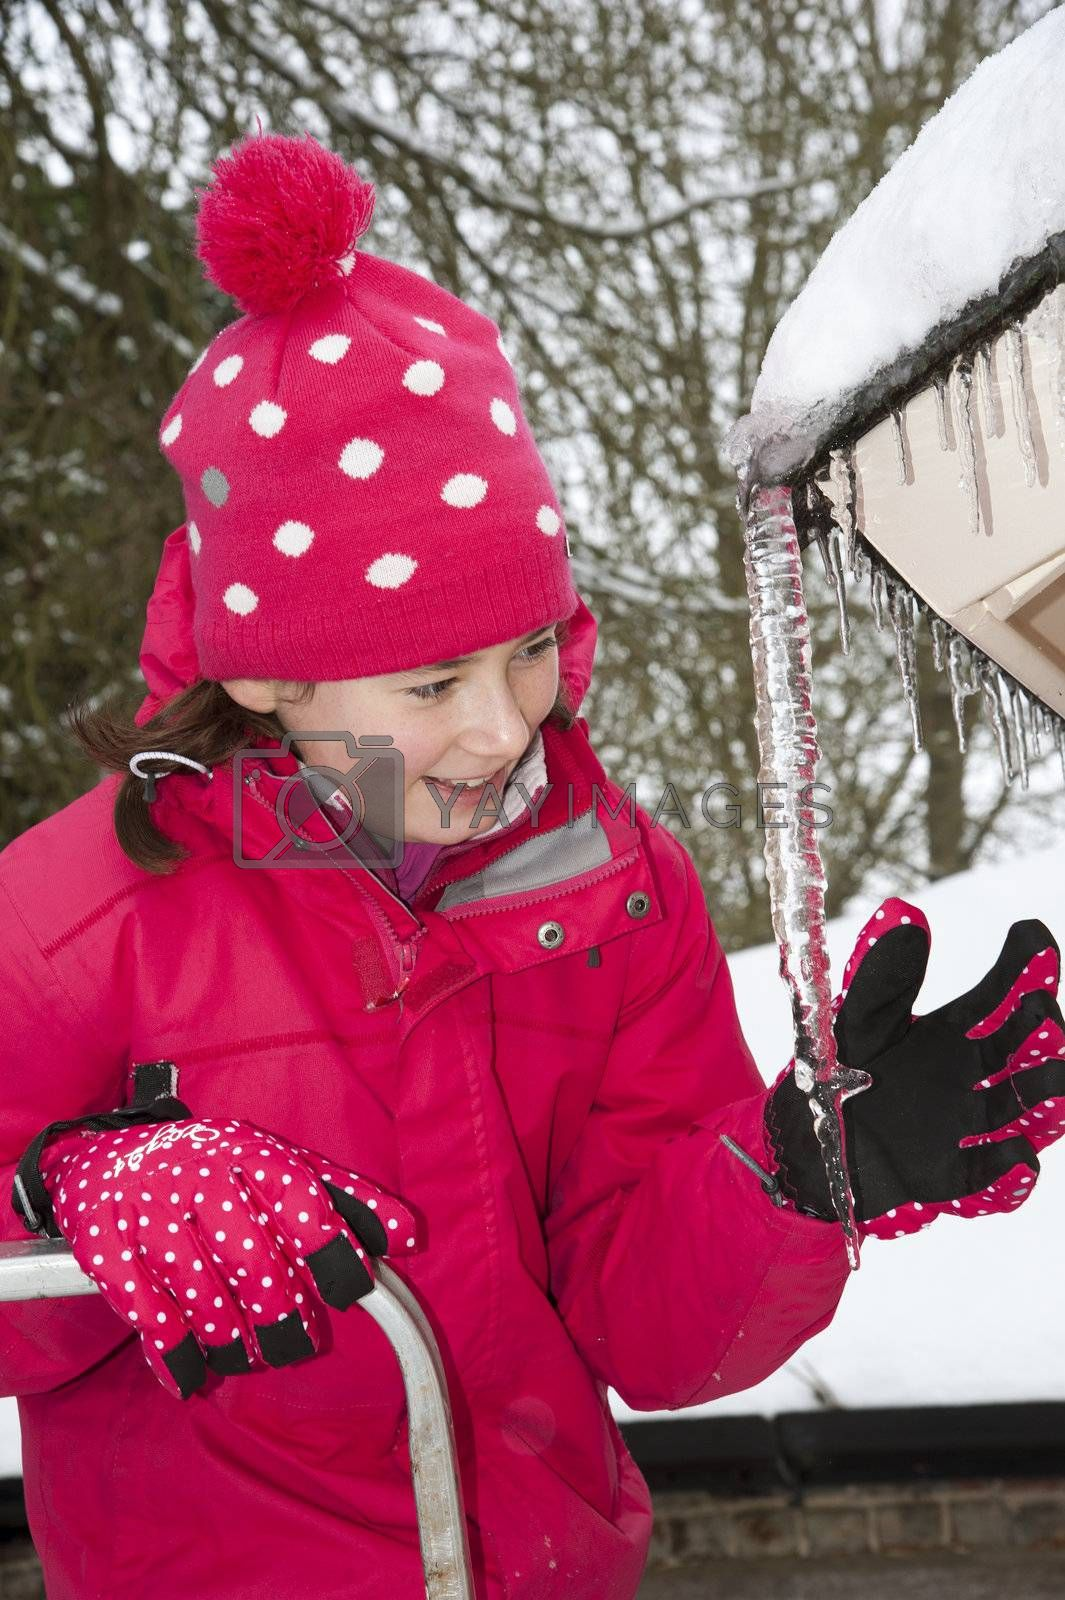 Winter cold snap. Young girl stands on some steps to check the size of an icicle hanging from a roof. Hampshire England UK